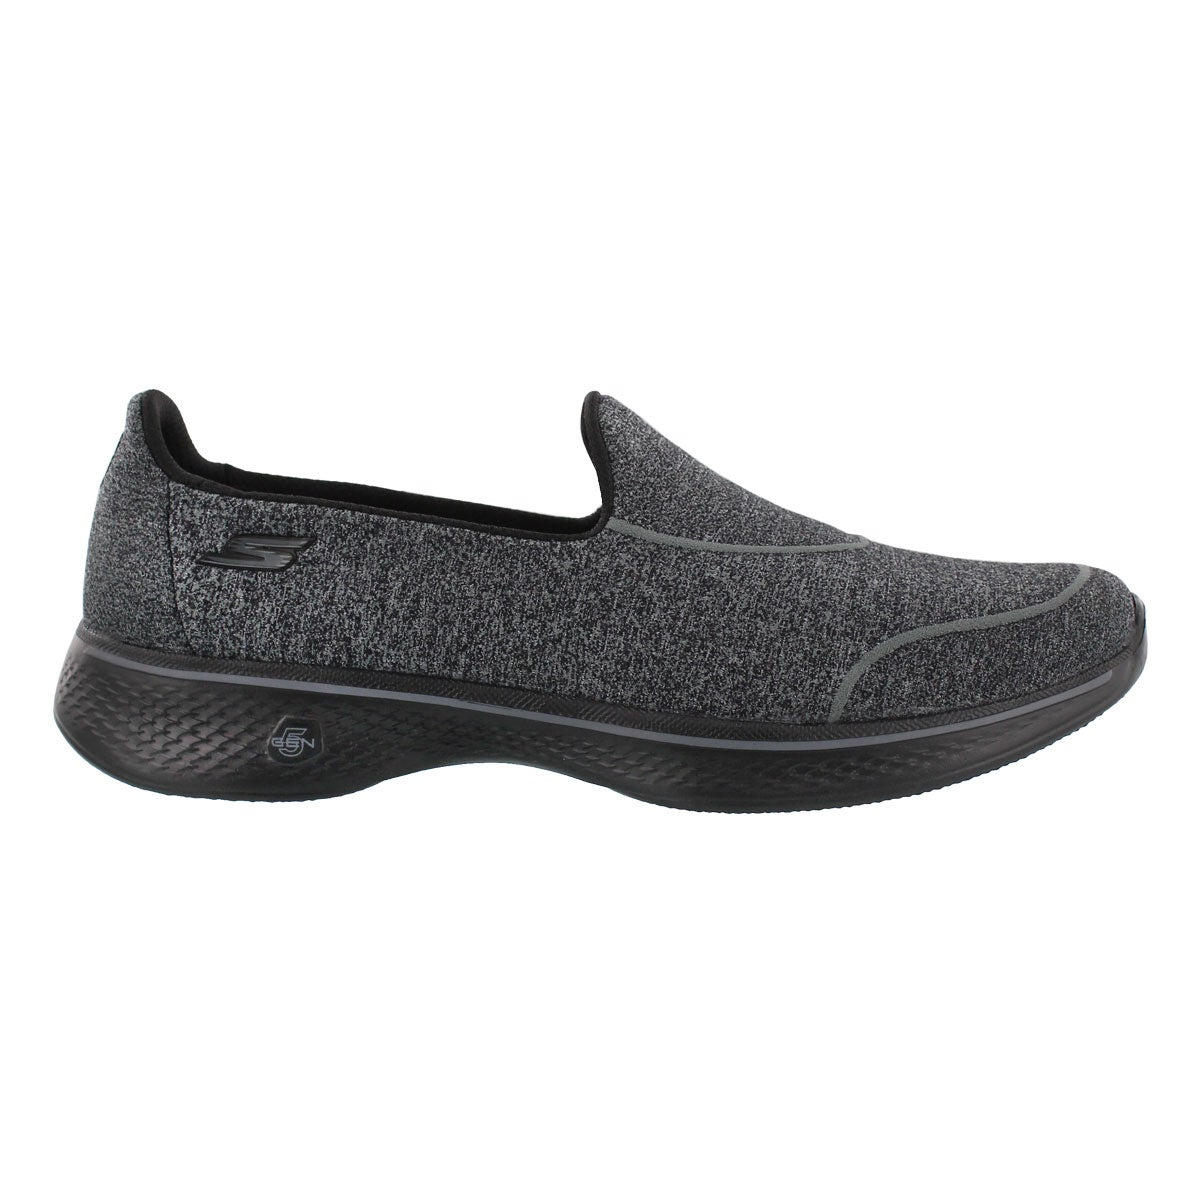 Lds GO Walk4 Super Sock blk slip on shoe